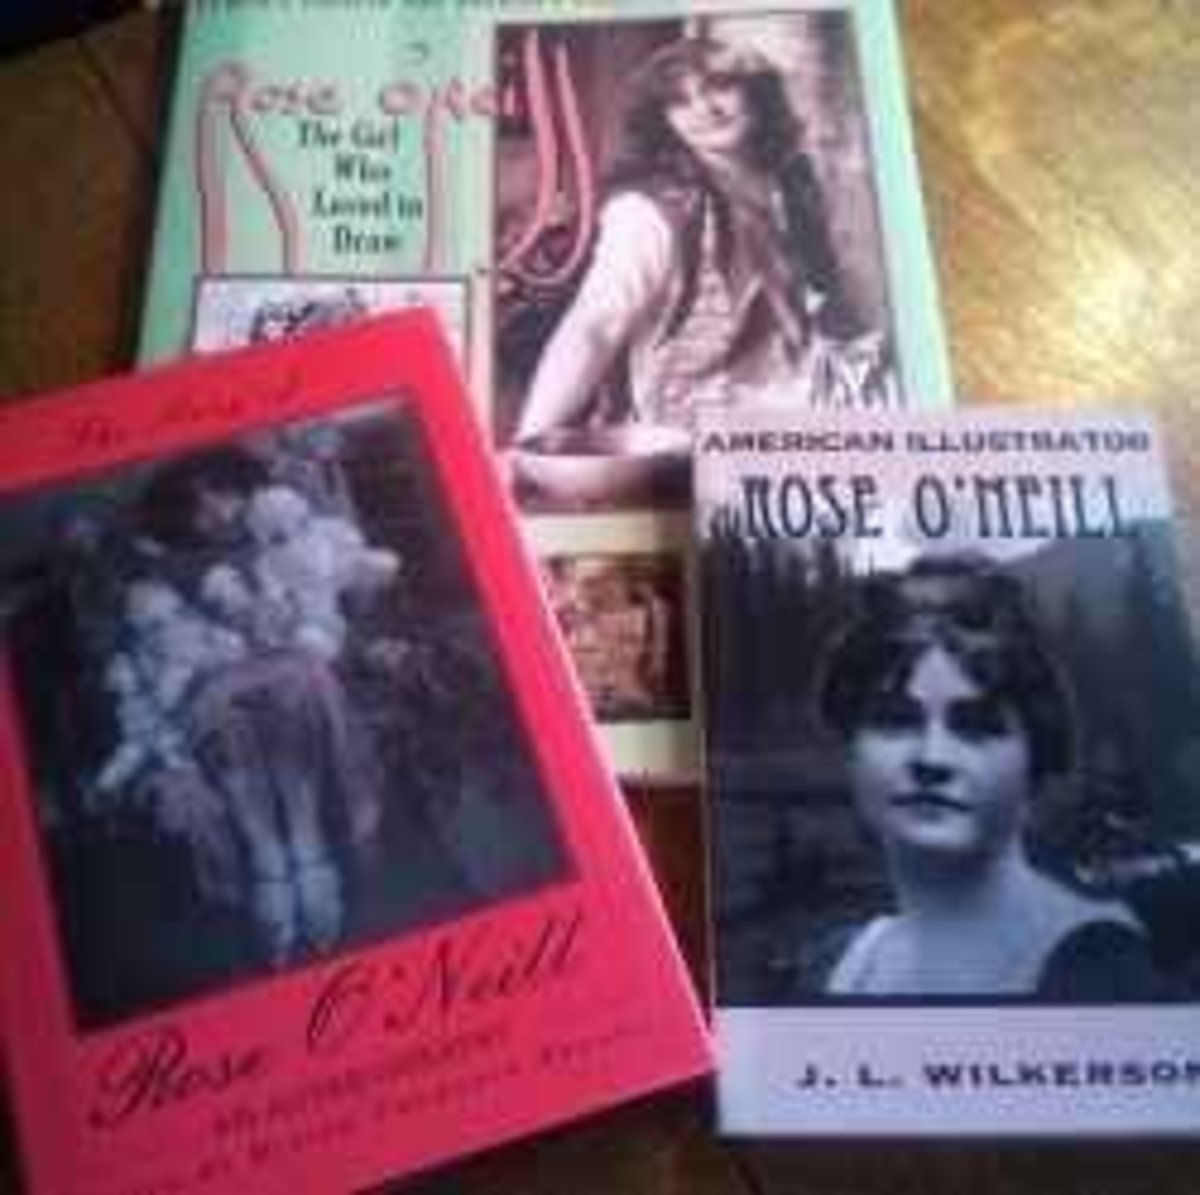 A few books from my Rose O'Neill collection.